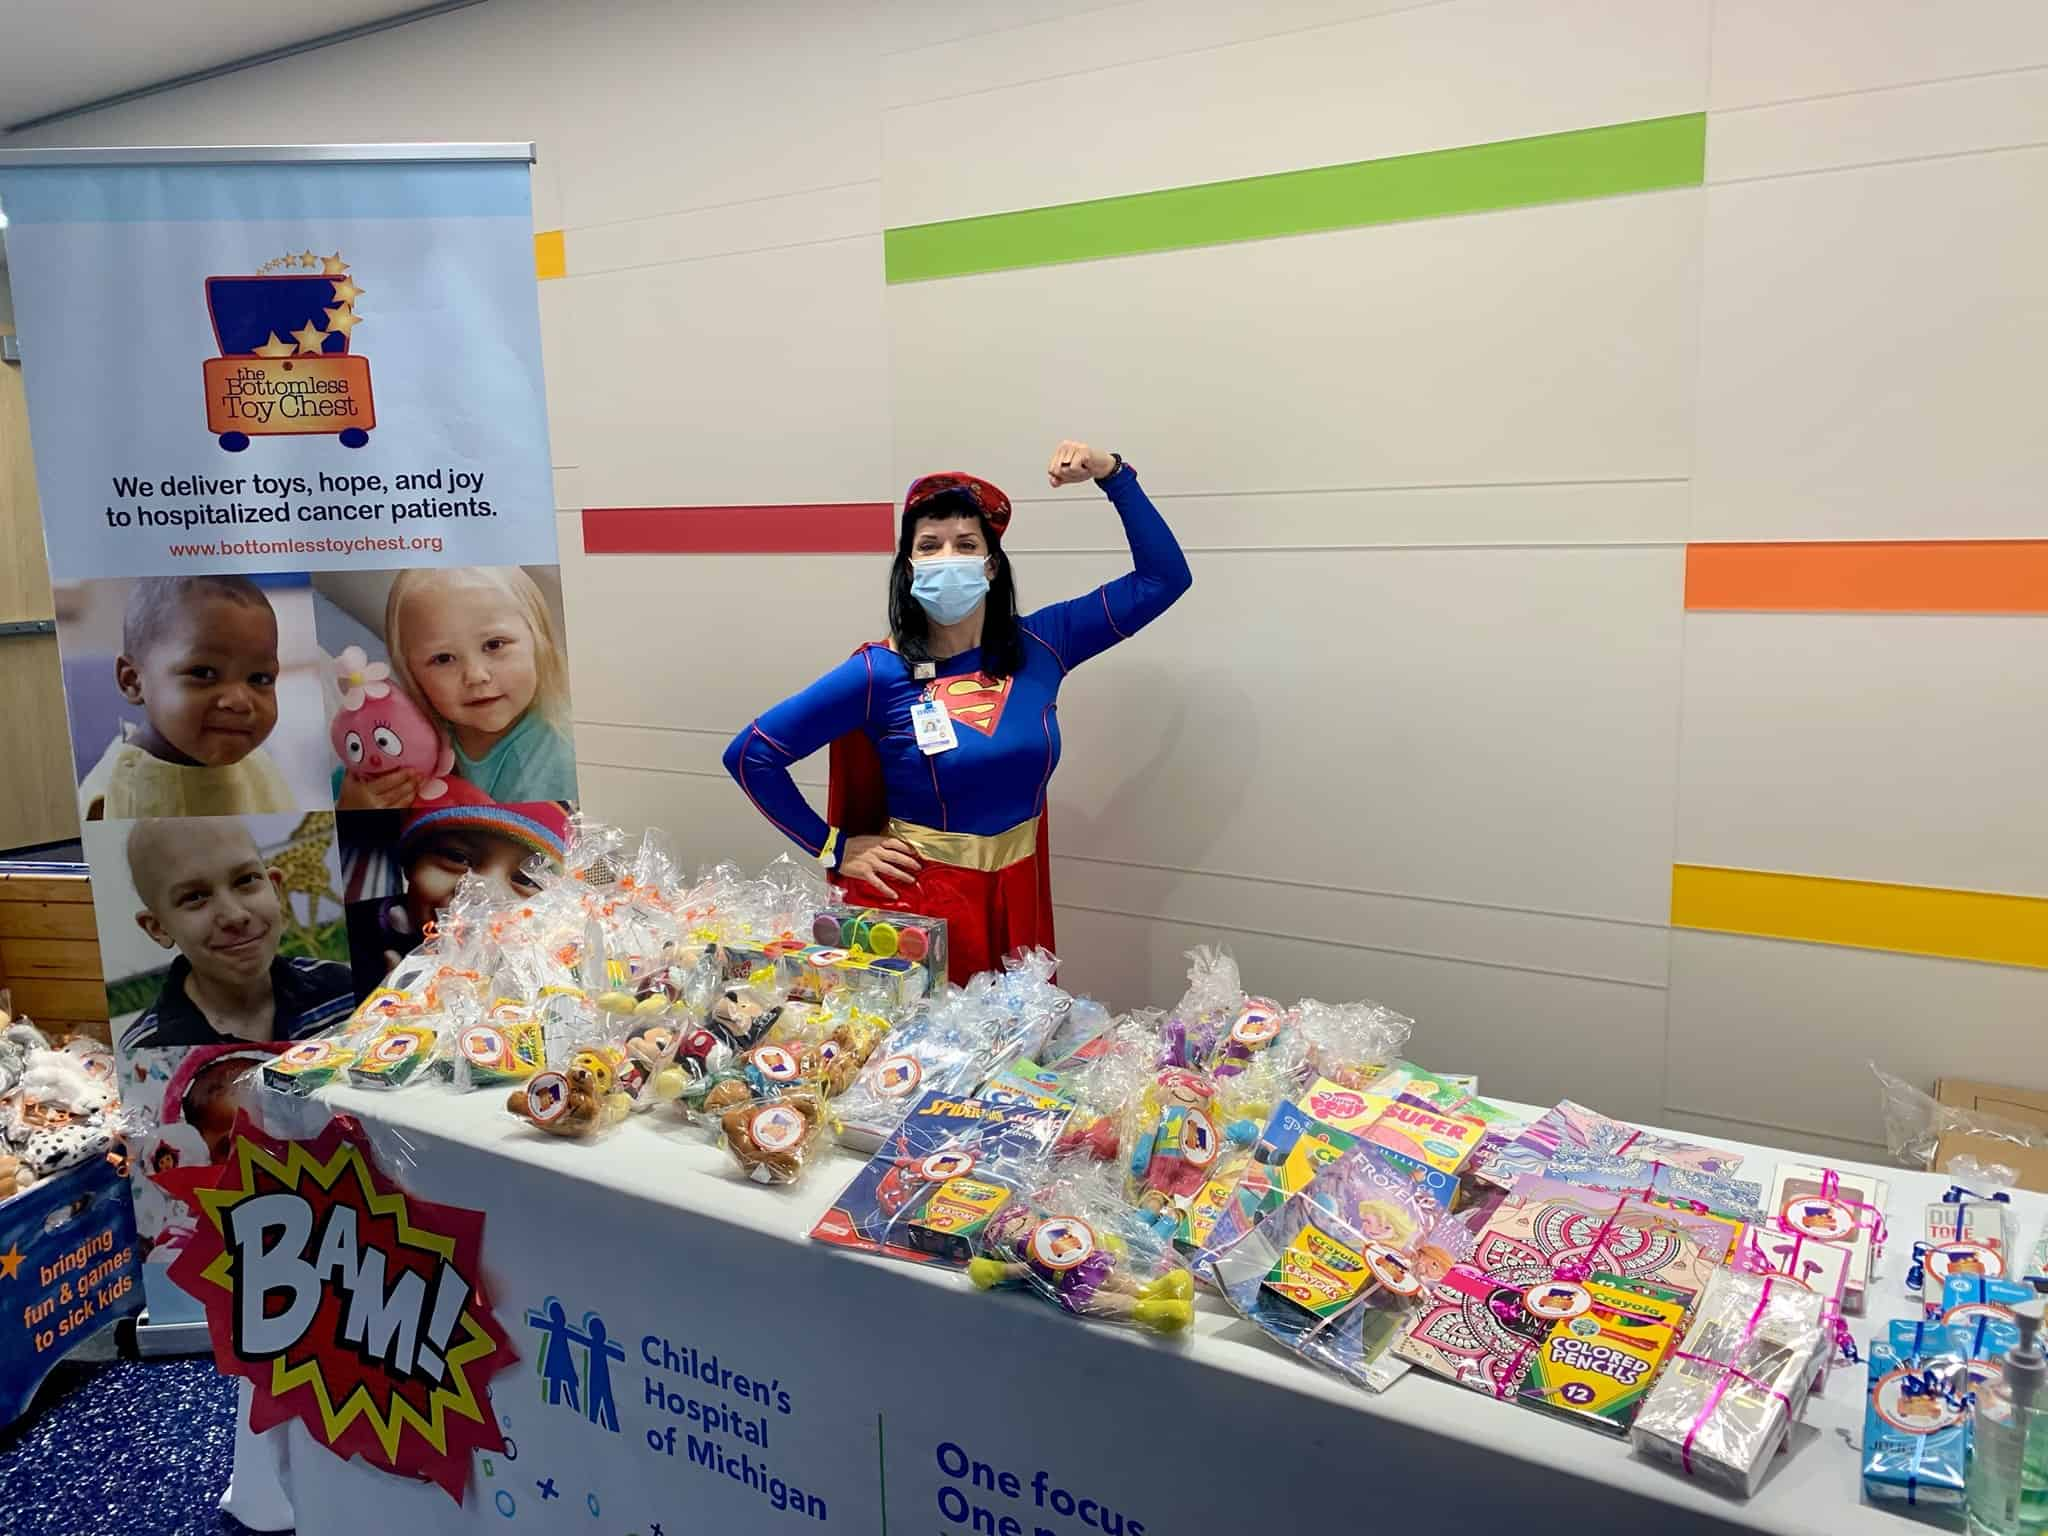 A Bottomless Toy Chest employee dressed as Wonder Woman flexes a muscle while standing near a table of gifts.